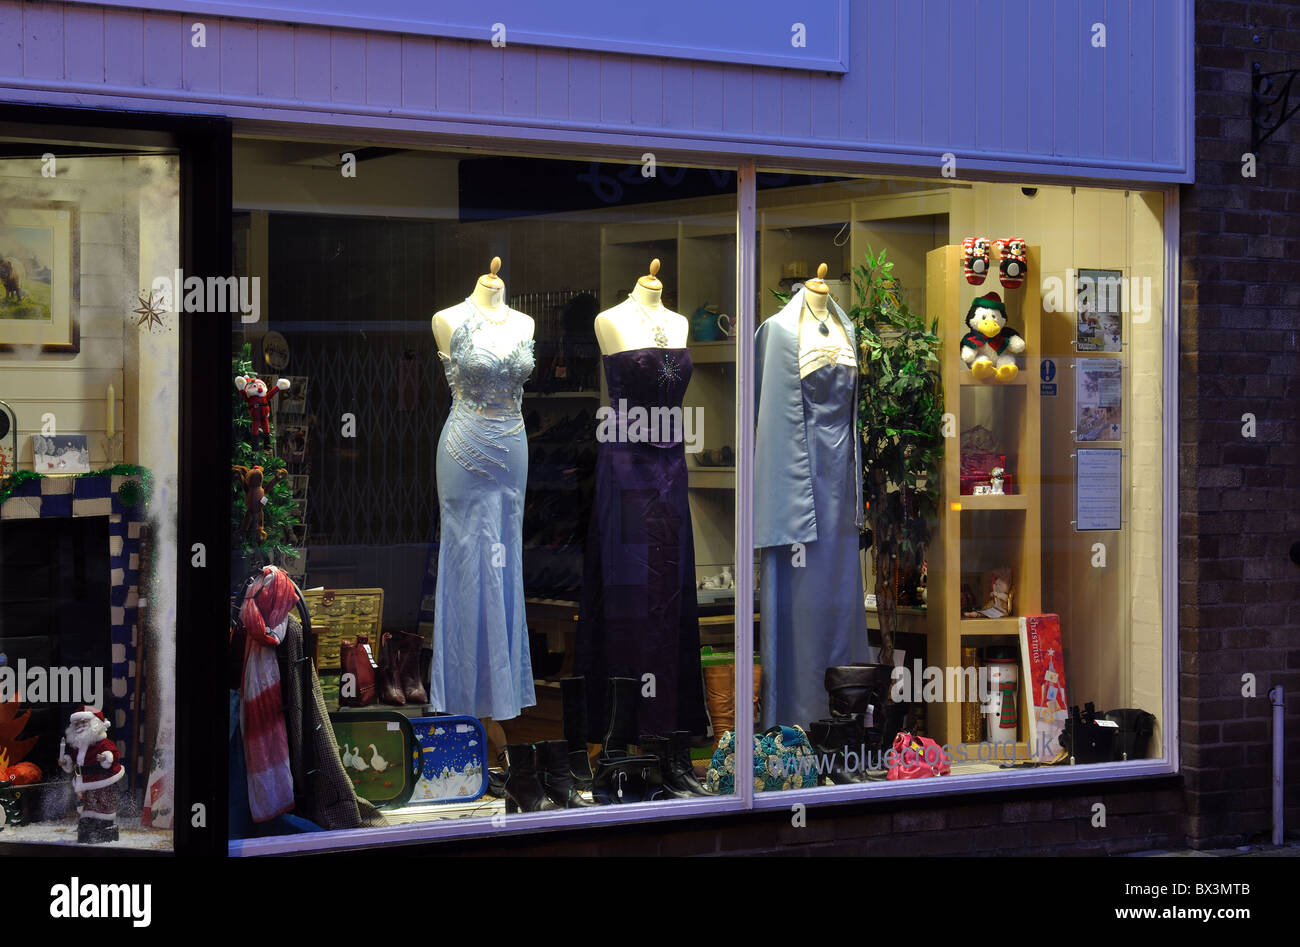 The Blue Cross charity shop window, Warwick, UK - Stock Image